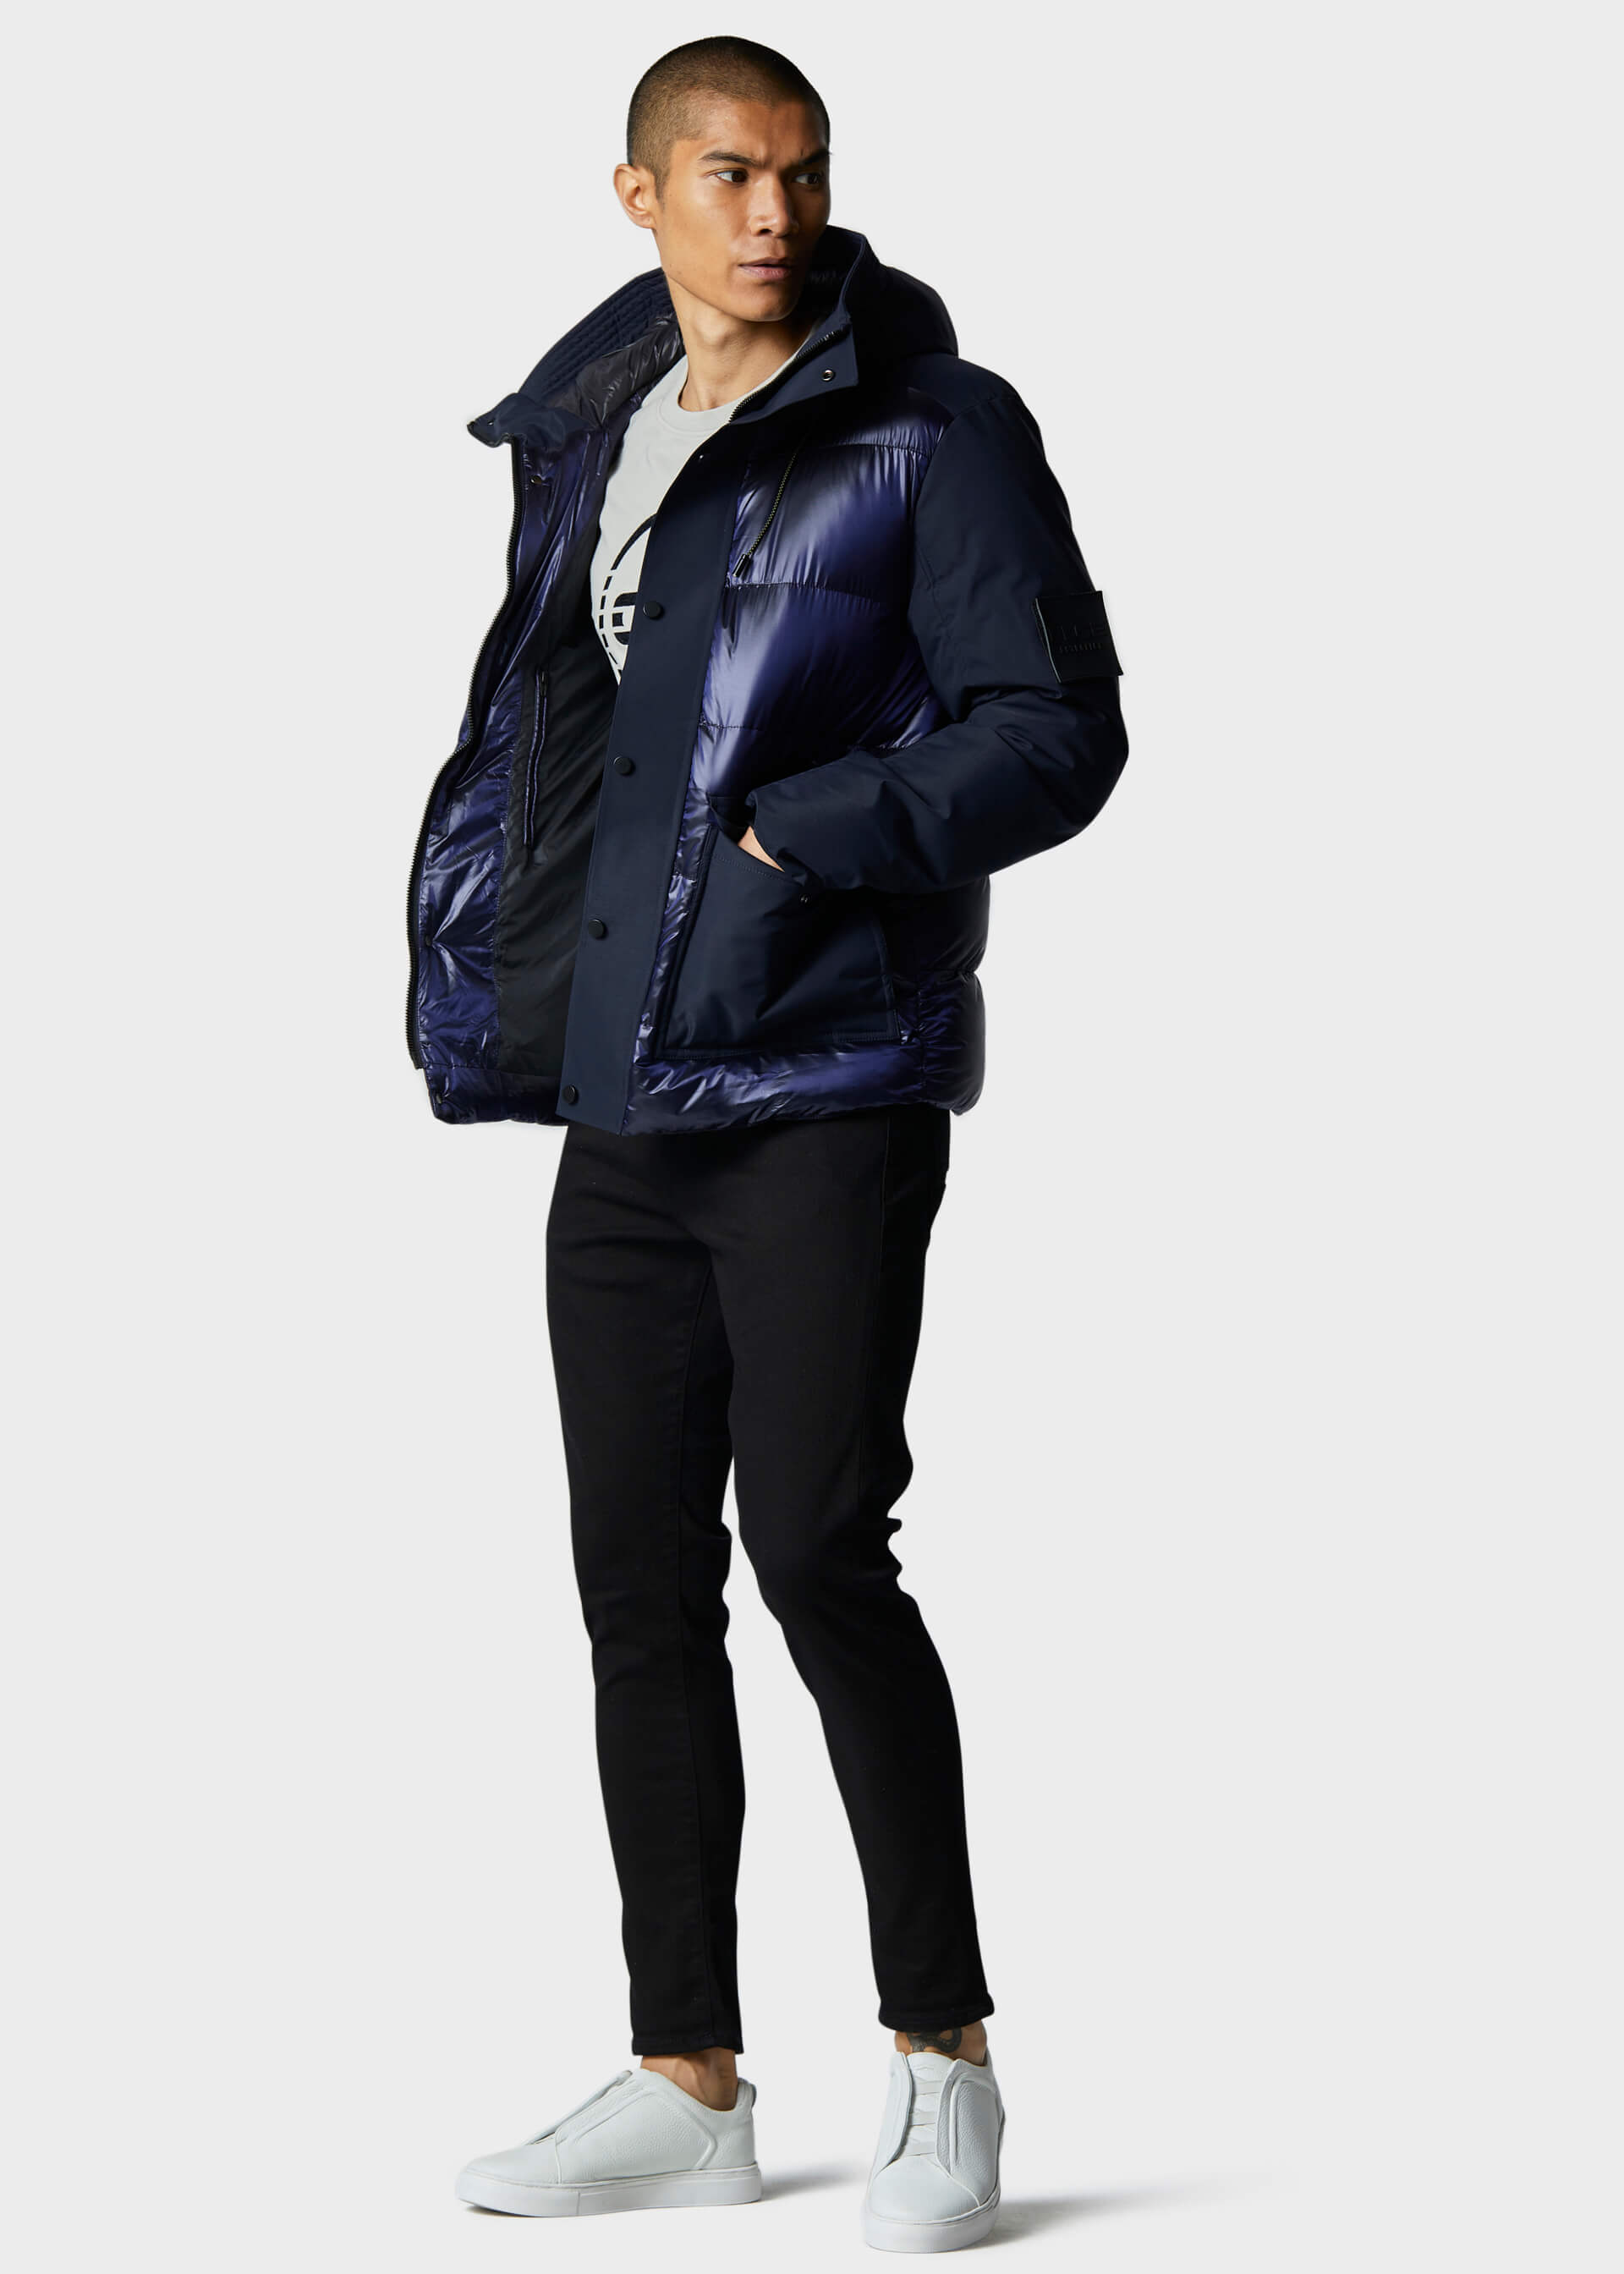 Manorr Navy Jacket second_image